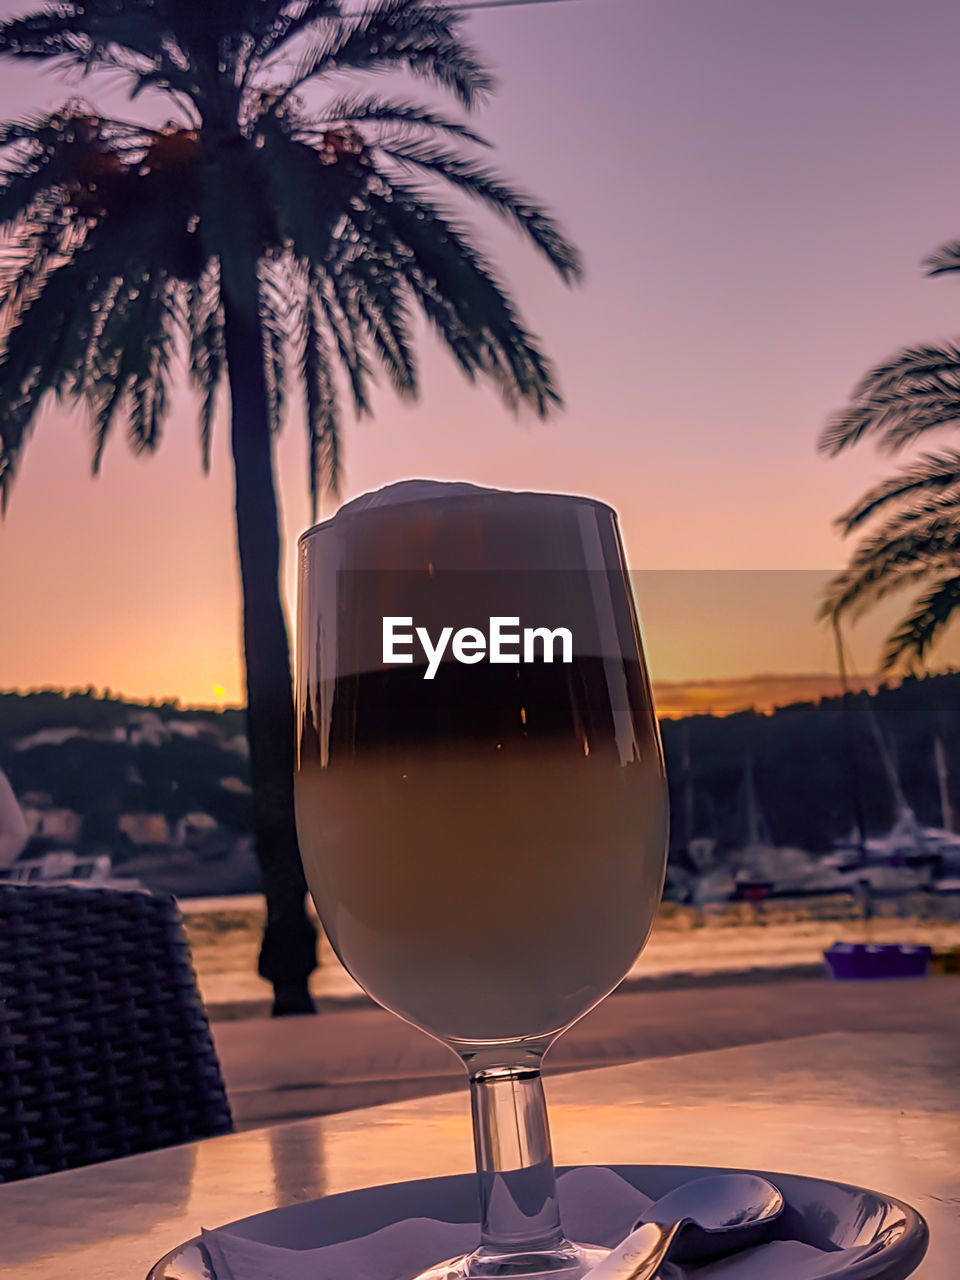 drink, alcohol, glass, sunset, refreshment, palm tree, wine, food and drink, wineglass, tropical climate, sky, tree, table, nature, plant, no people, drinking glass, household equipment, focus on foreground, orange color, red wine